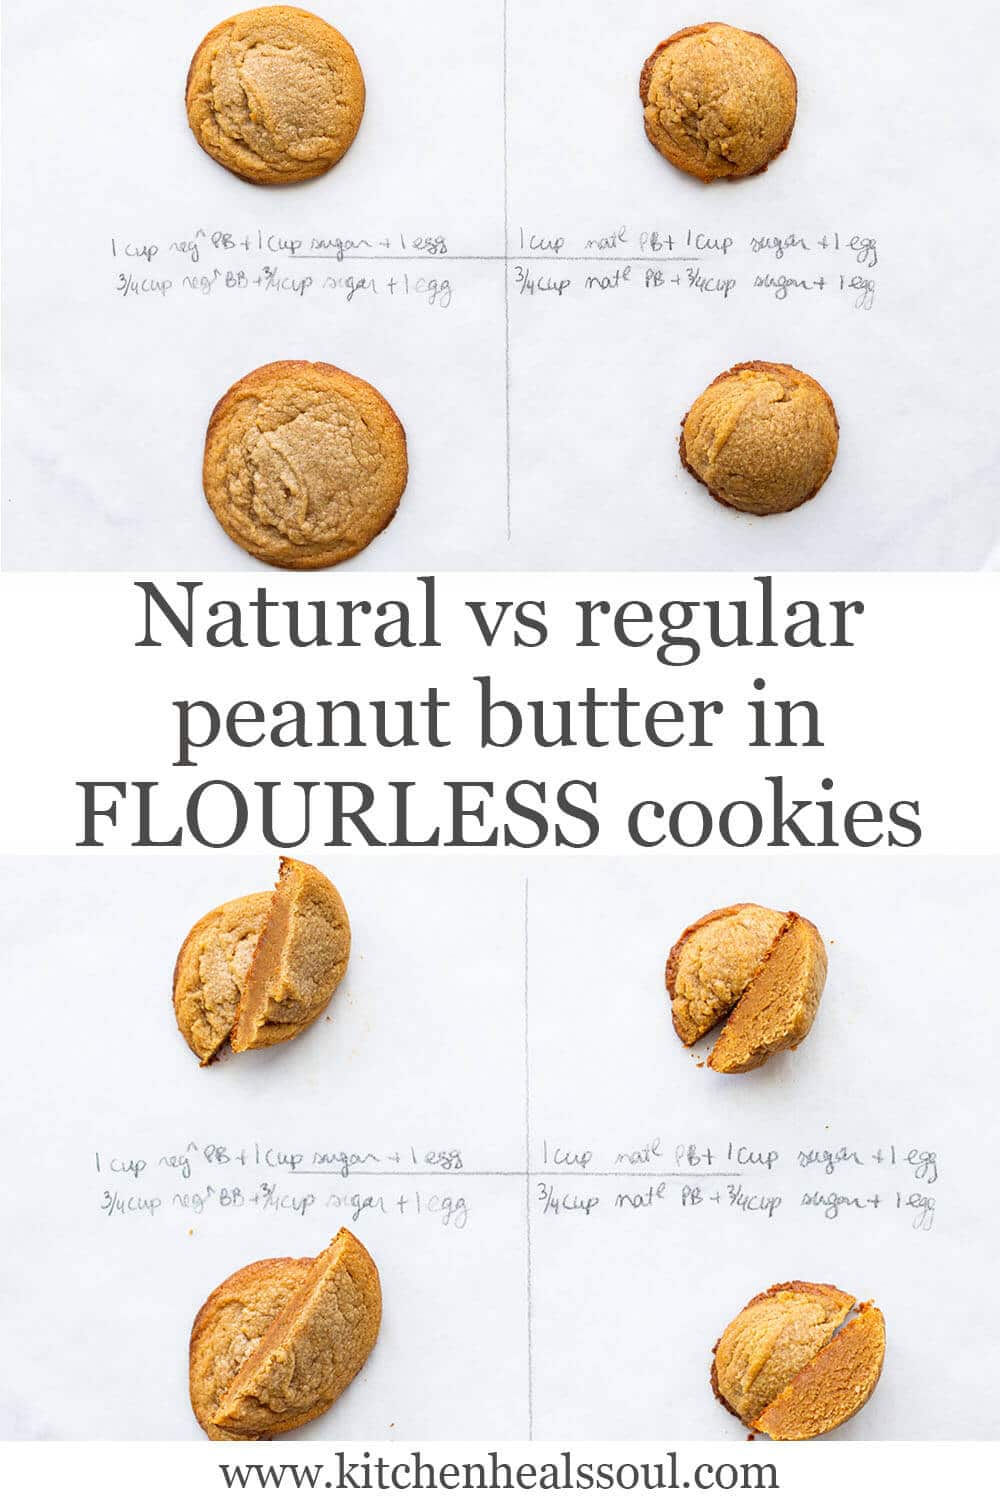 Natural vs regular peanut butter in flourless peanut butter cookies